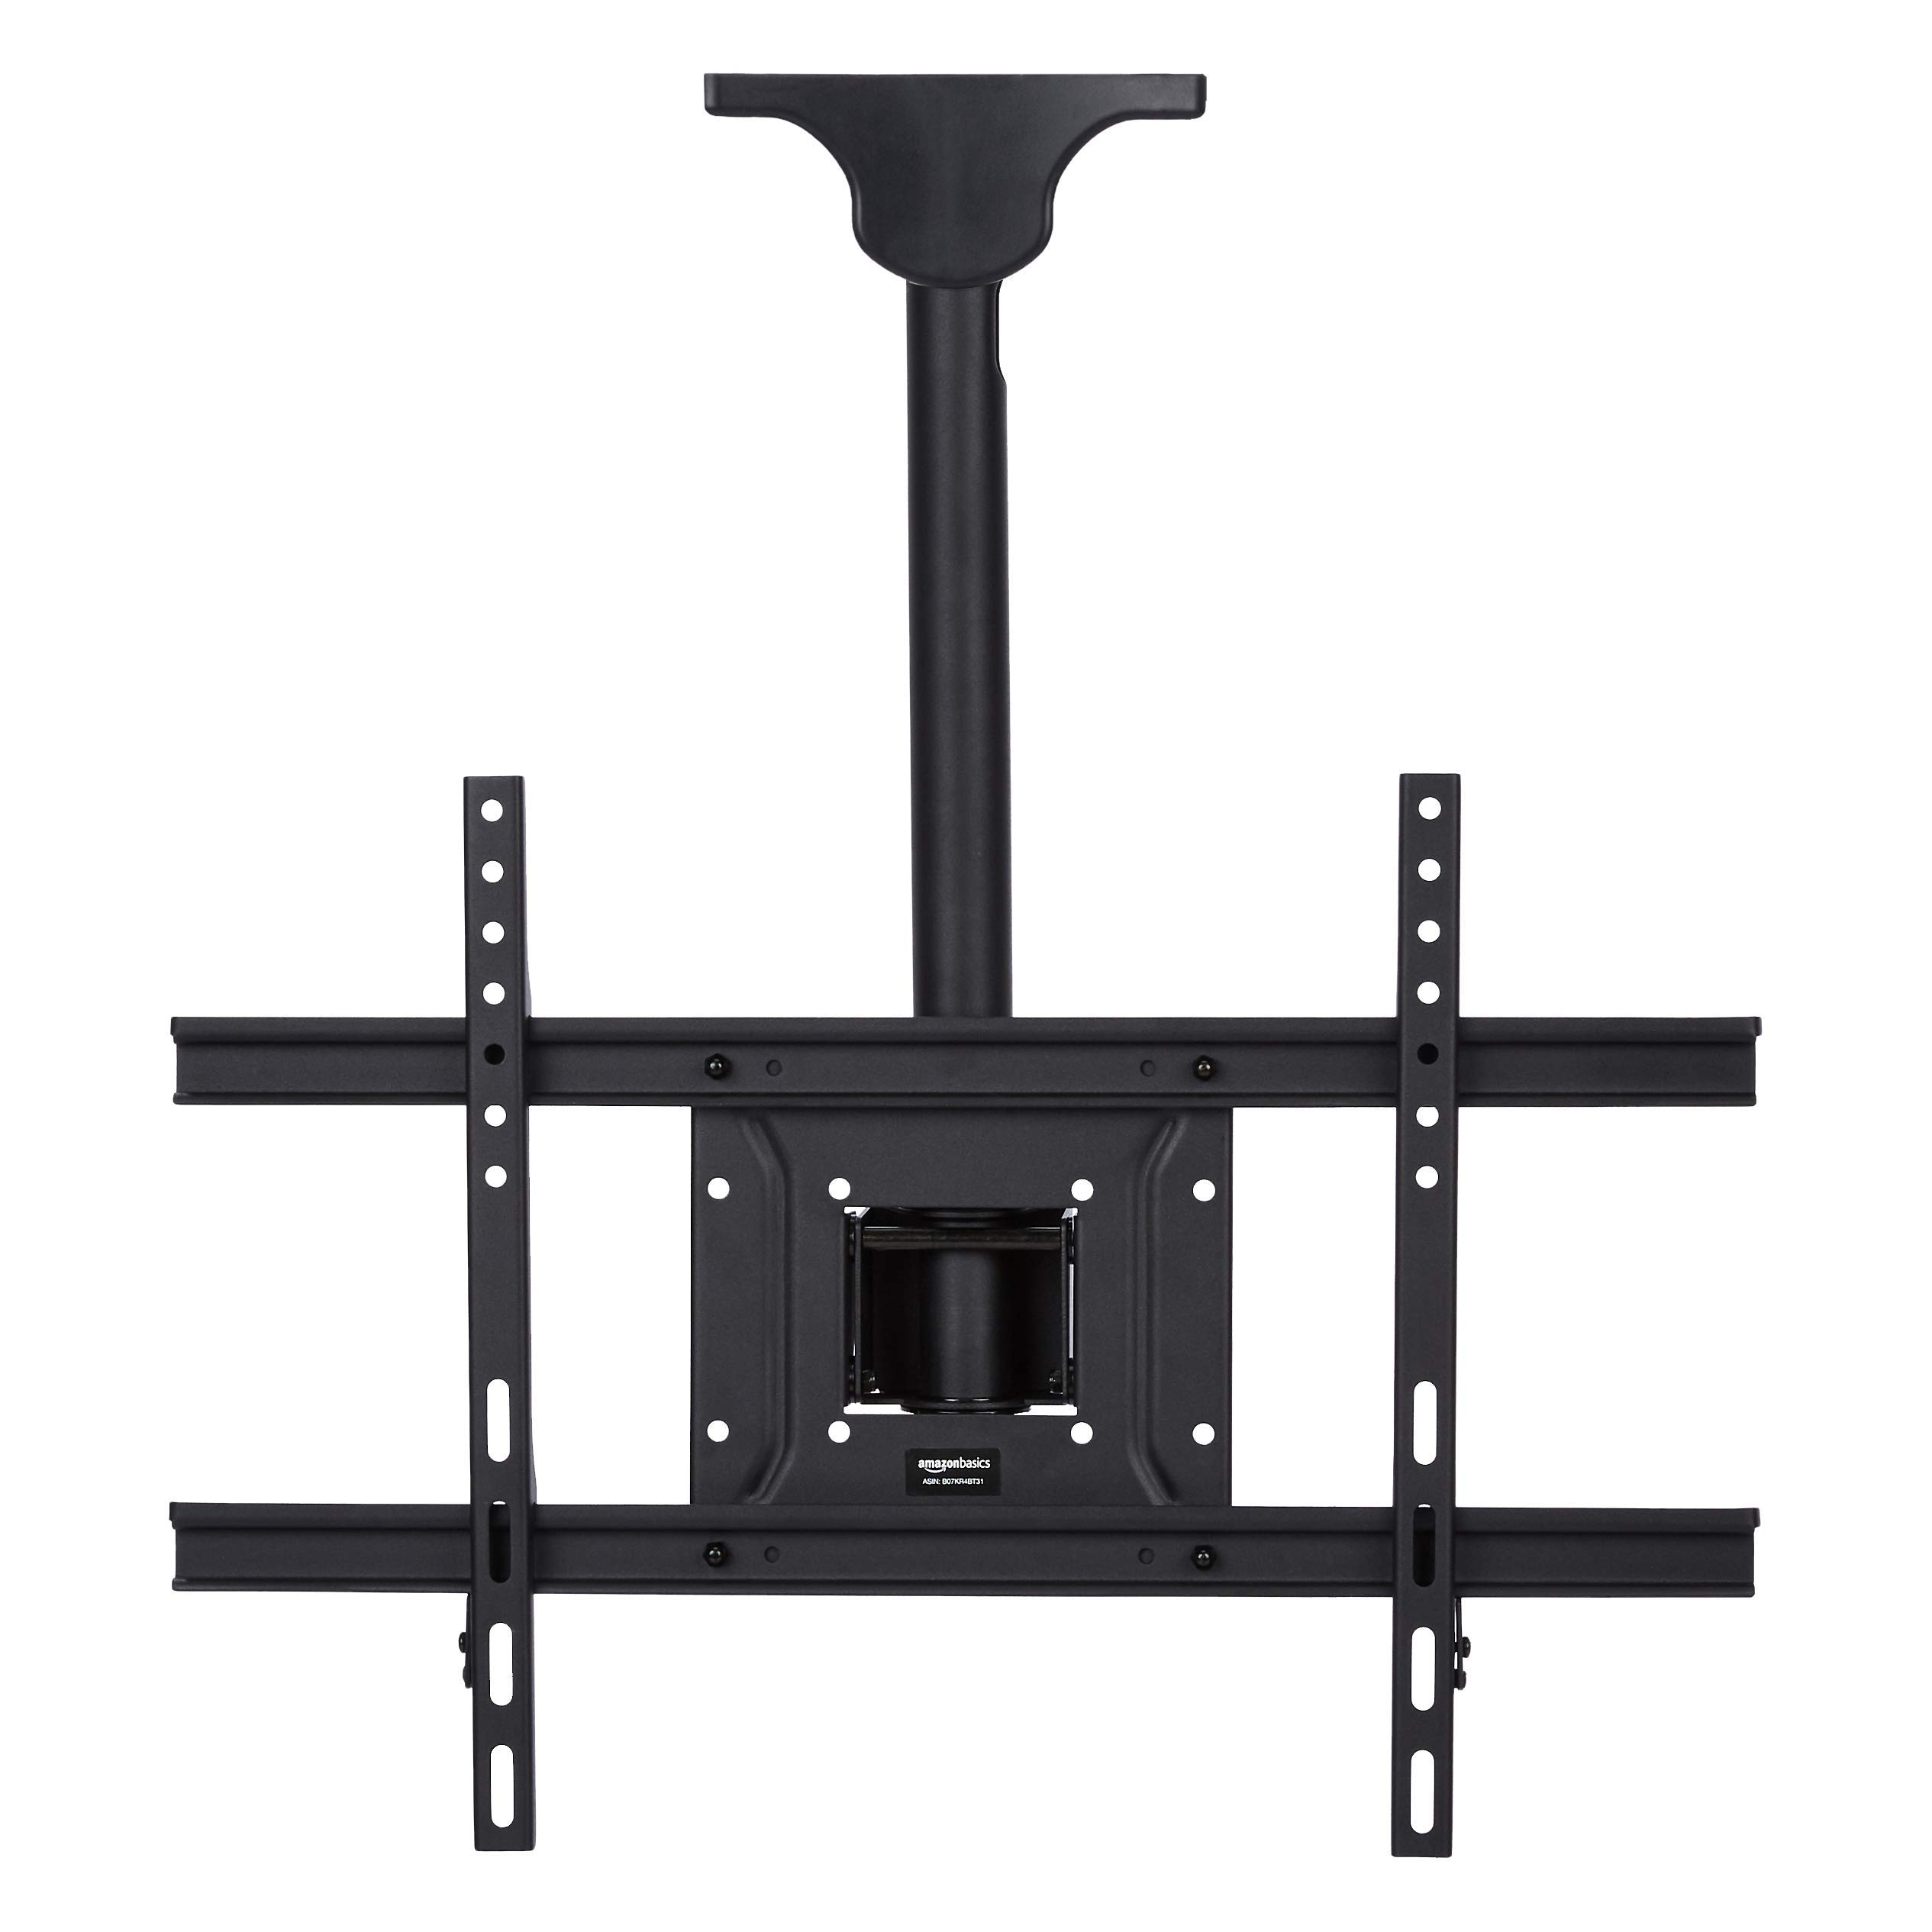 'AmazonBasics Ceiling TV Mount, 37'' to 80'' (Renewed) by AmazonBasics